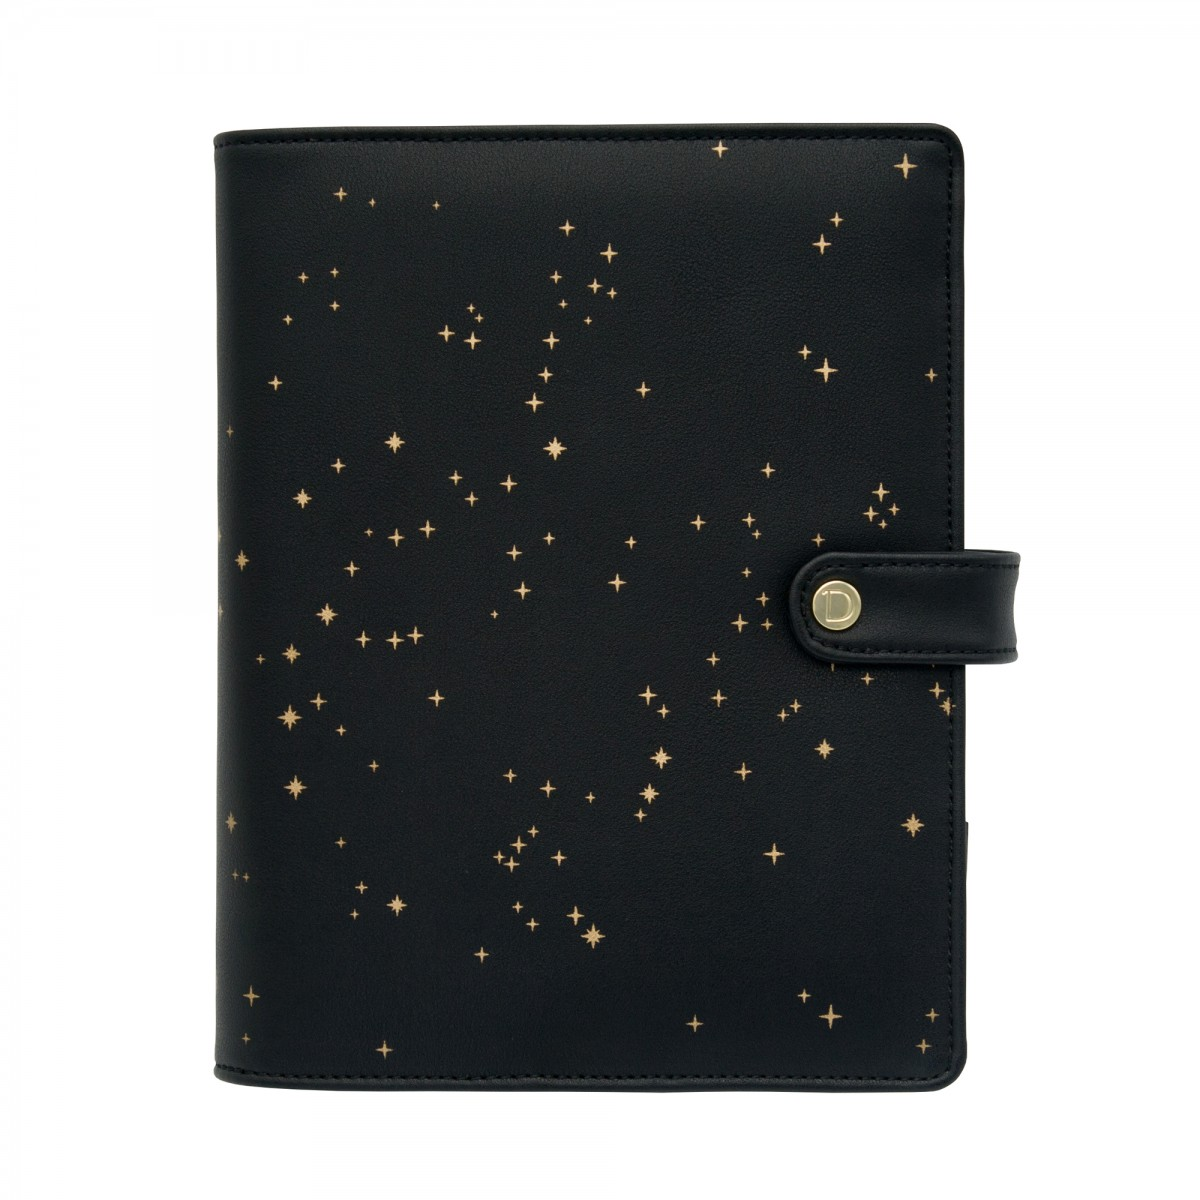 DISCAGENDA CONSTELLATIONS COVER A5 SNAP CLOSURE